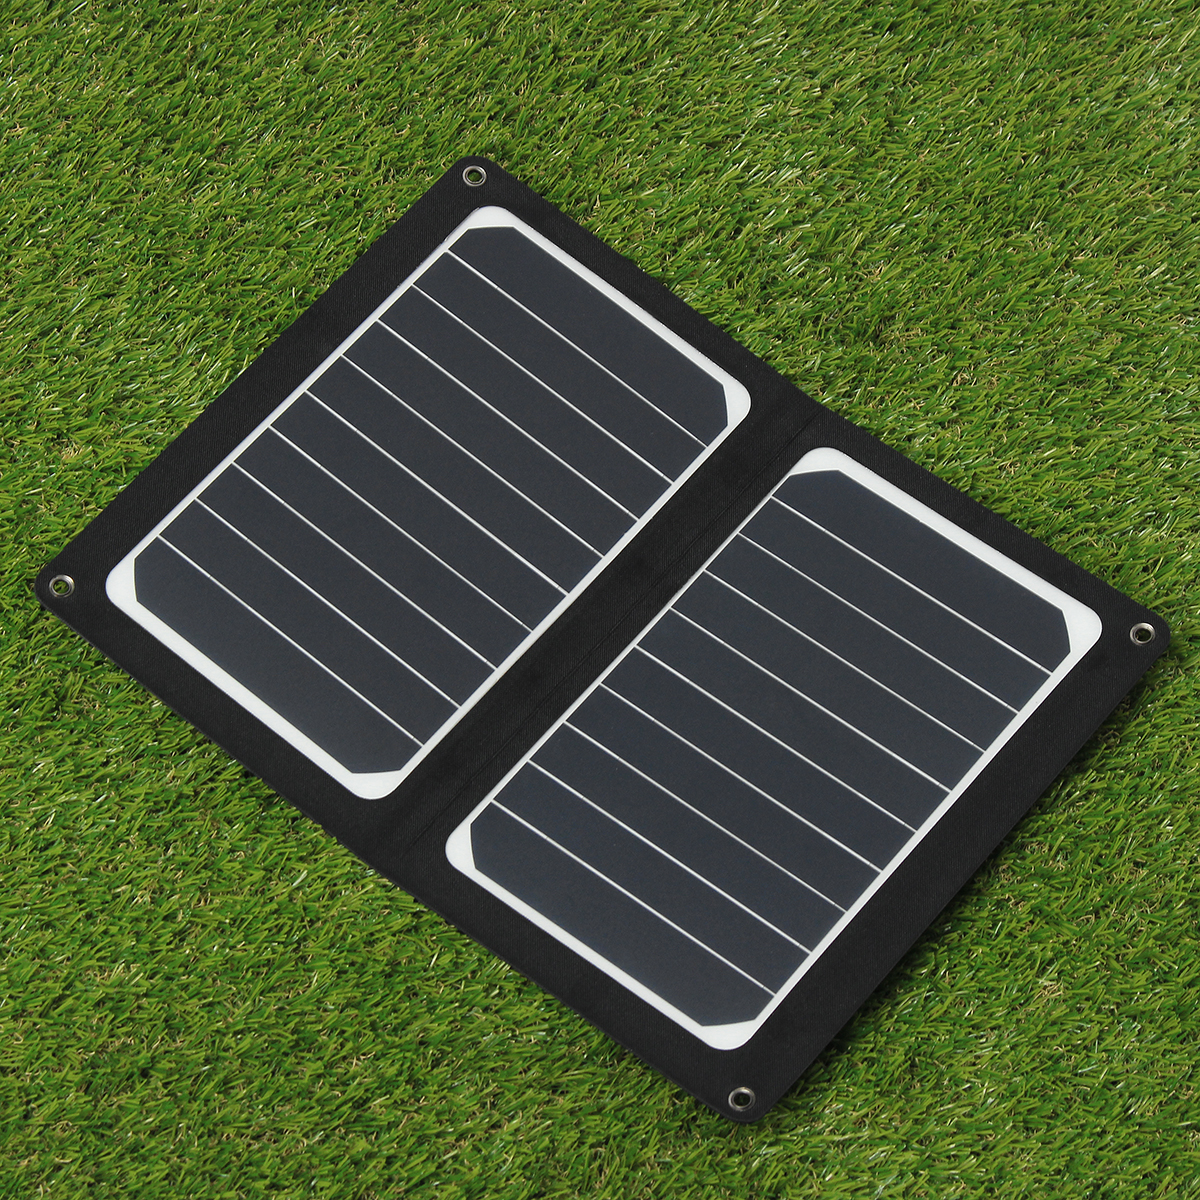 10W 6V 6mm Slim & Light USB Solar Panel External Battery Charger Power Bank Pad